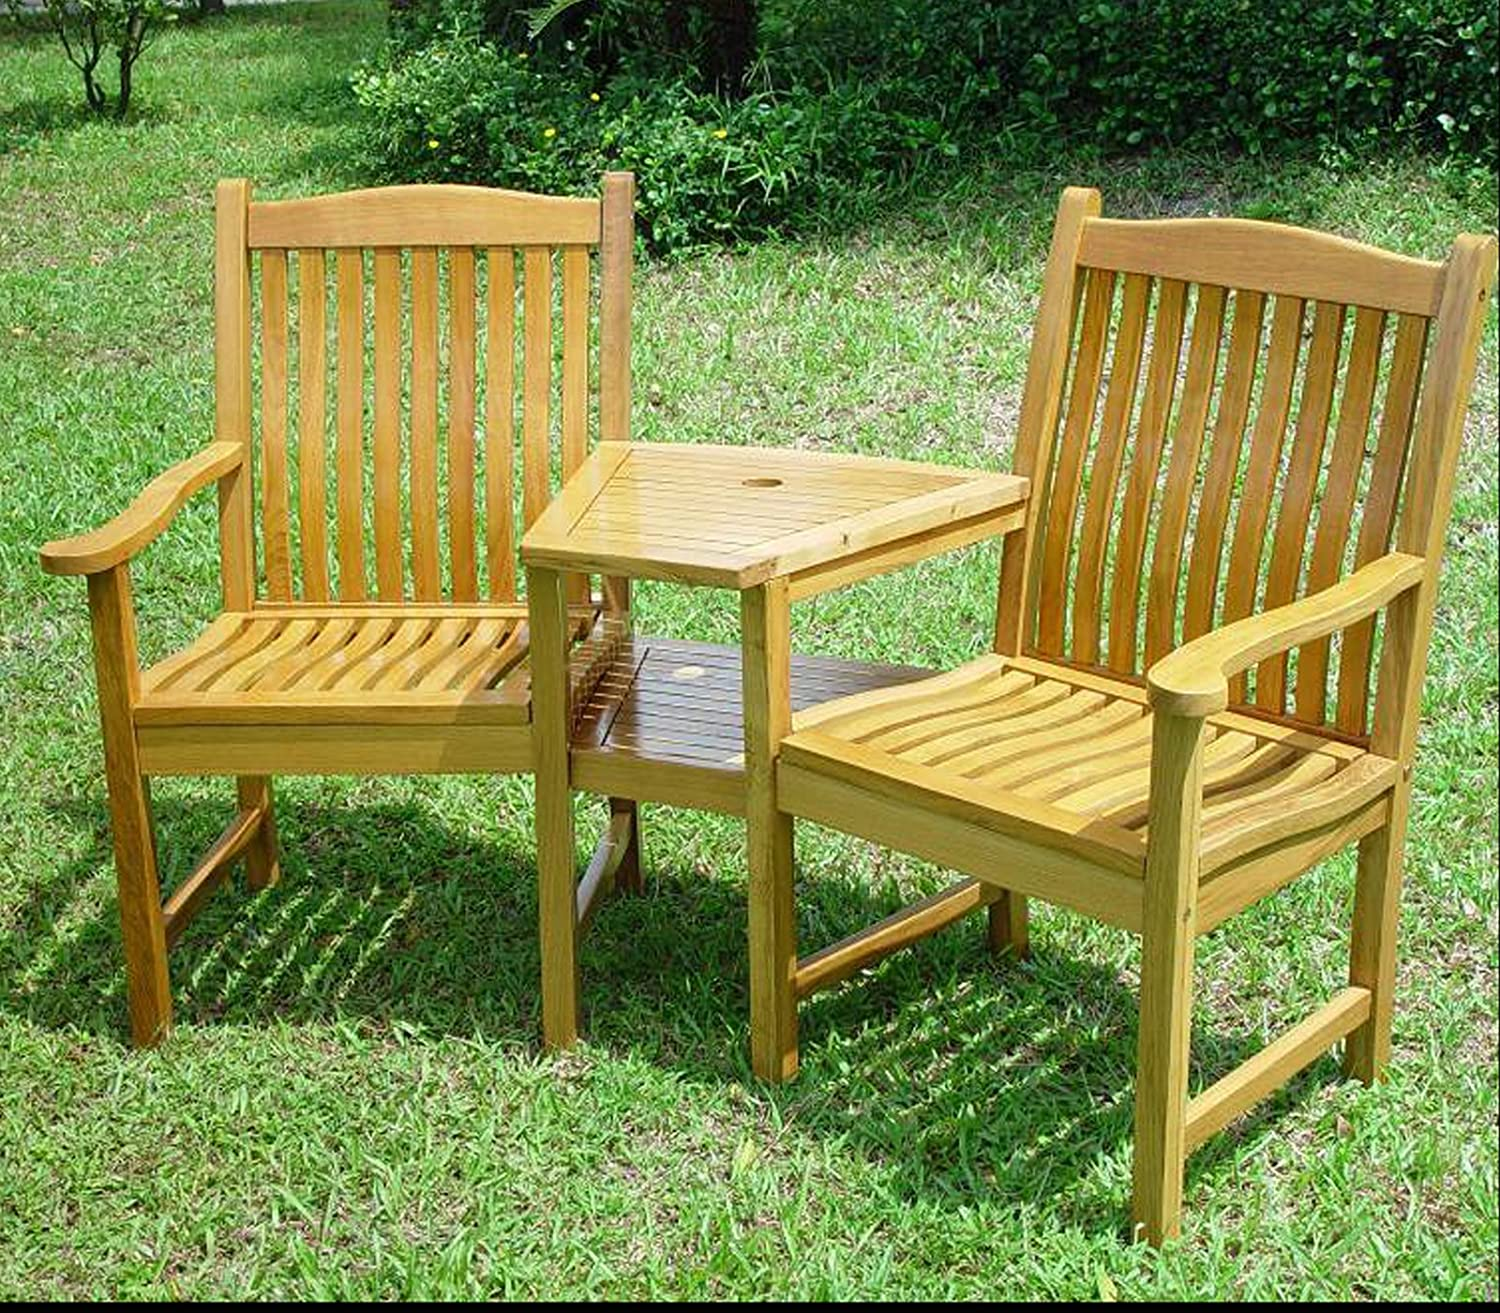 solid oak garden love seat sale sale sale - Garden Furniture Love Seat